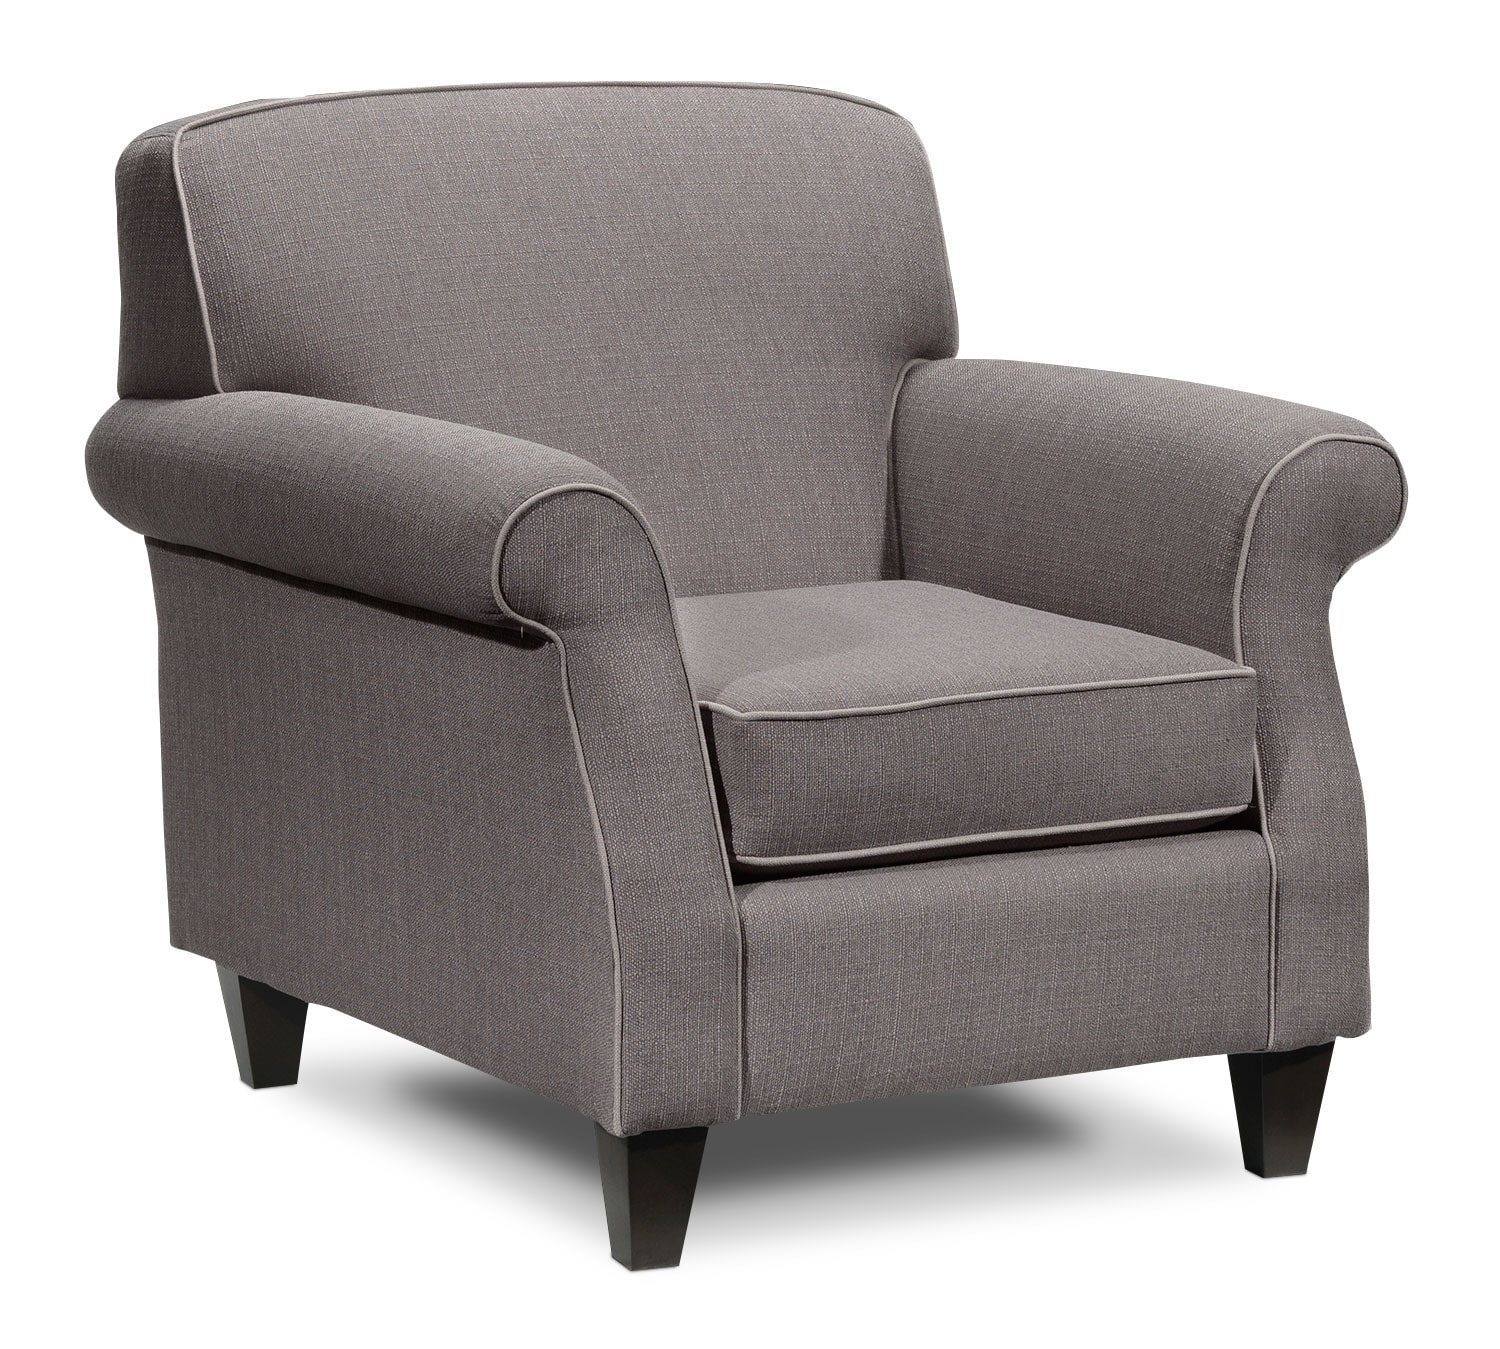 Living Room Furniture - Aristo Chair - Taupe